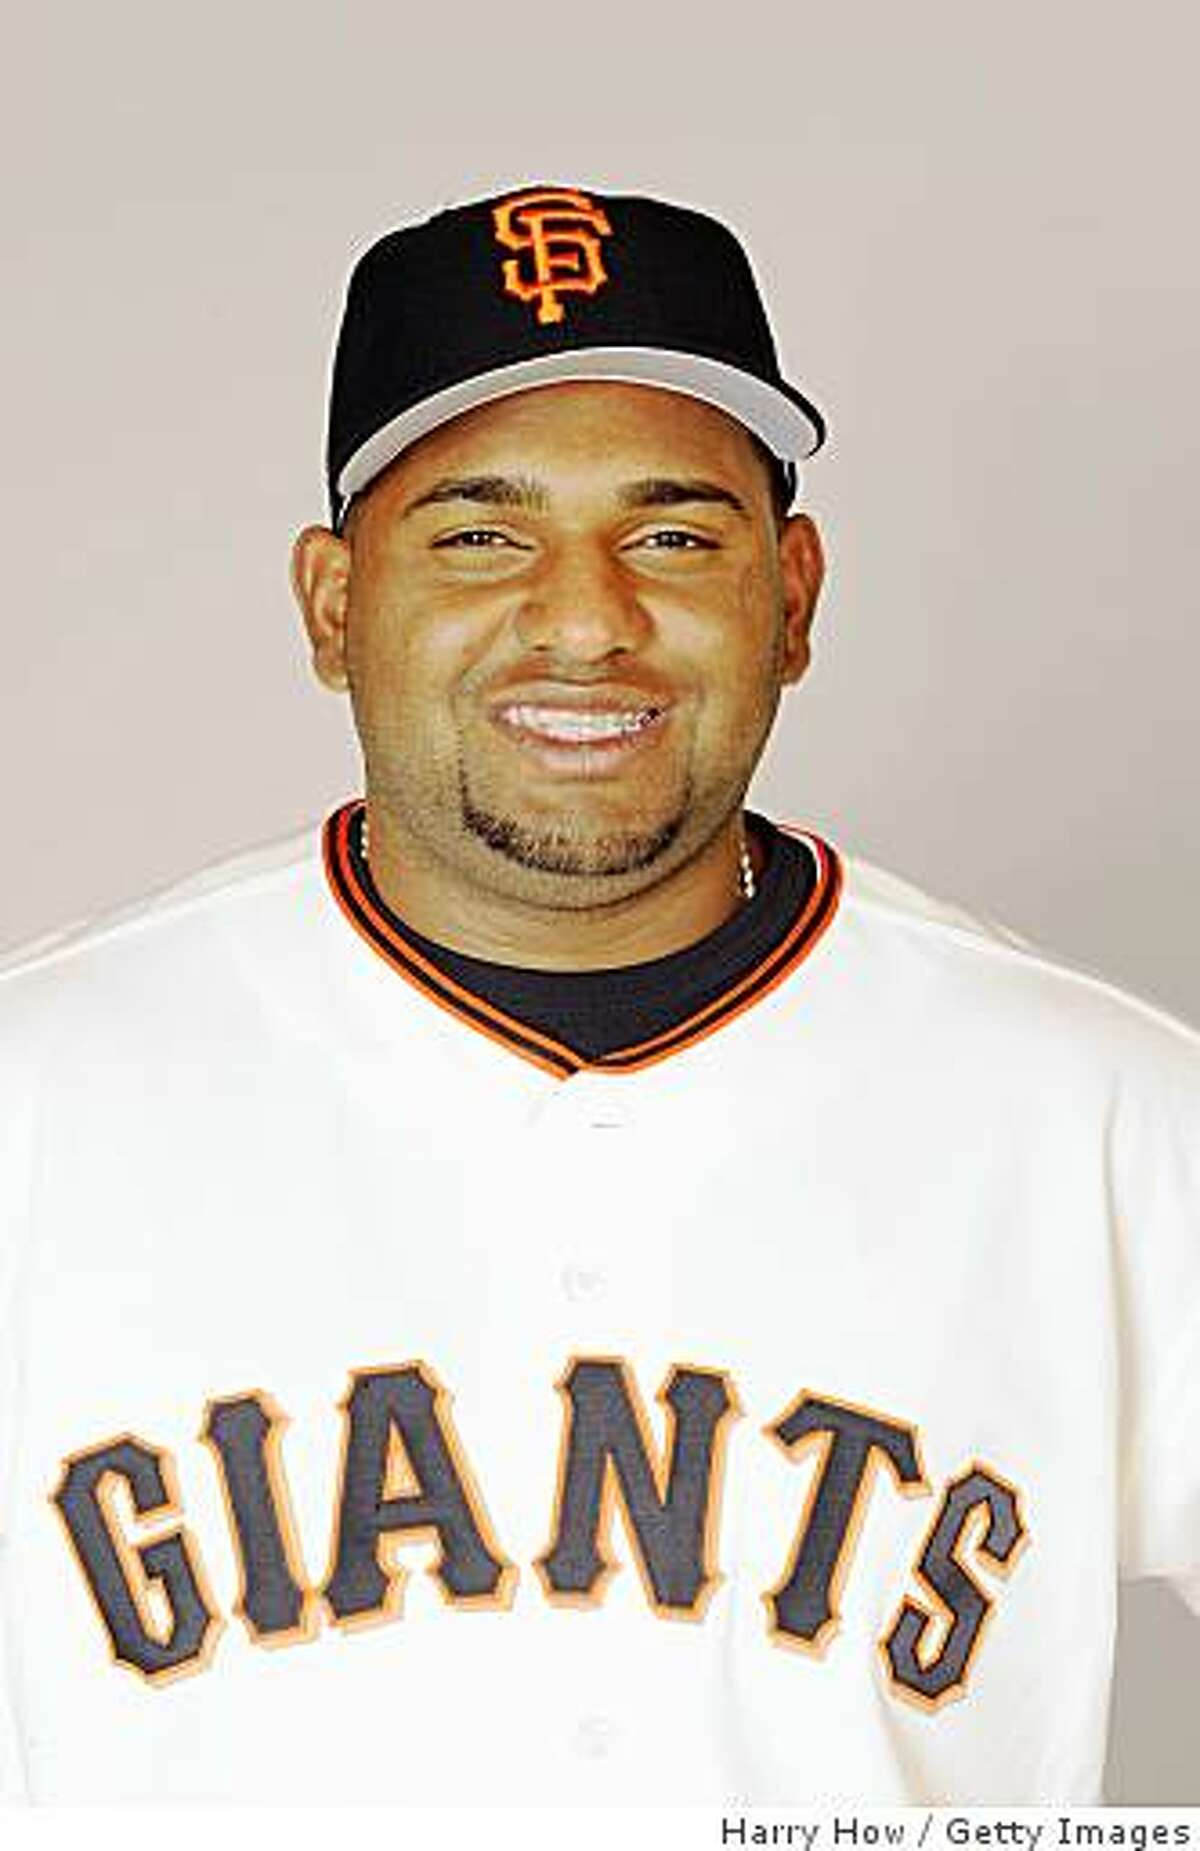 SCOTTSDALE, ARIZONA - FEBRUARY 23: Pablo Sandoval of the San Francisco Giants poses during photo day at Scottsdale Stadium on February 23, 2009 in Scottsdale, Arizona. (Photo by: Harry How/Getty Images)